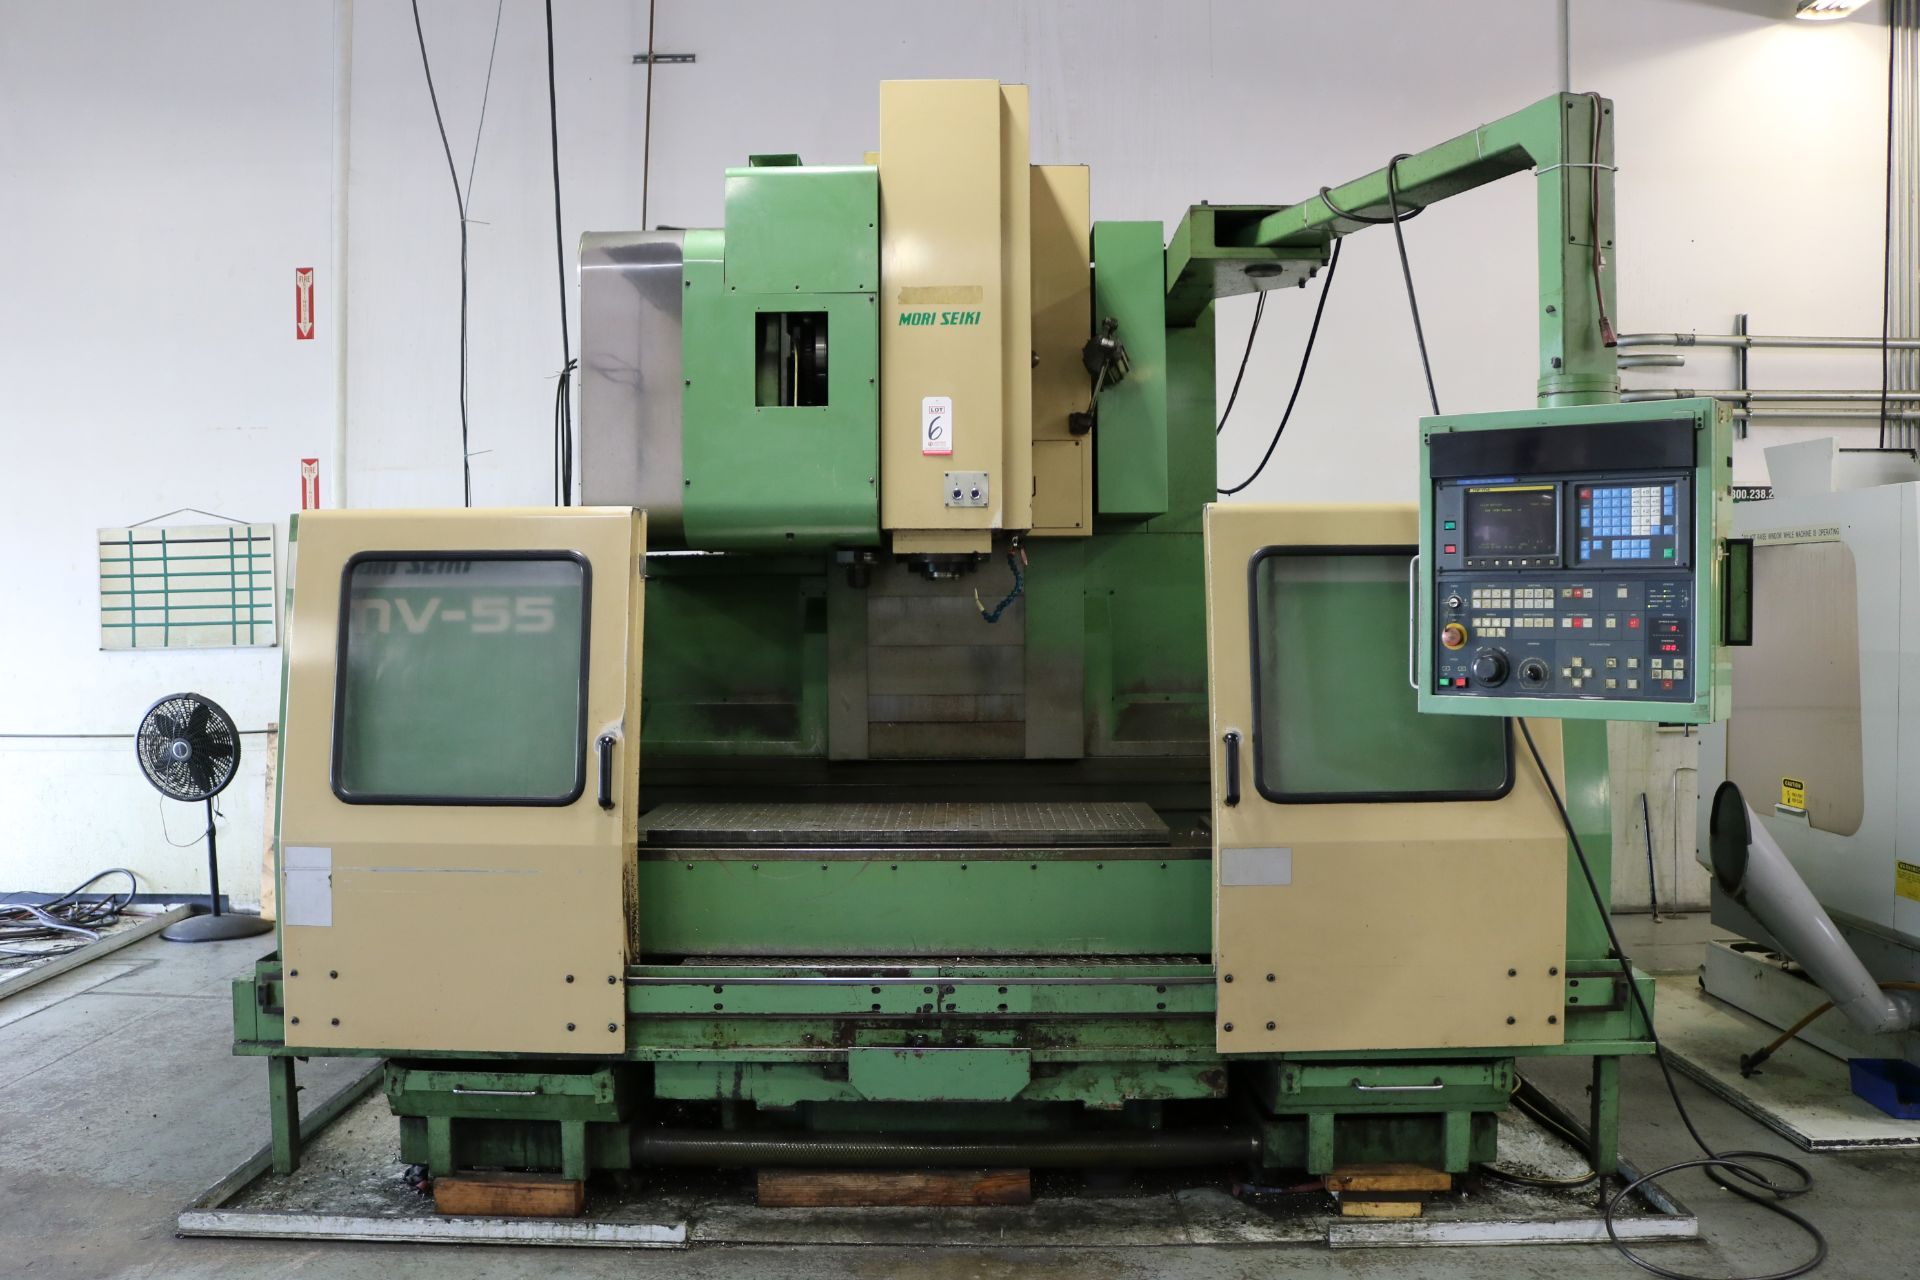 "Lot 6 - MORI SEIKI MV-55/50 CNC VERTICAL MACHINING CENTER, TRAVELS: 41"" X 21"" X 22"", 55"" X 21"" TABLE, 4000"